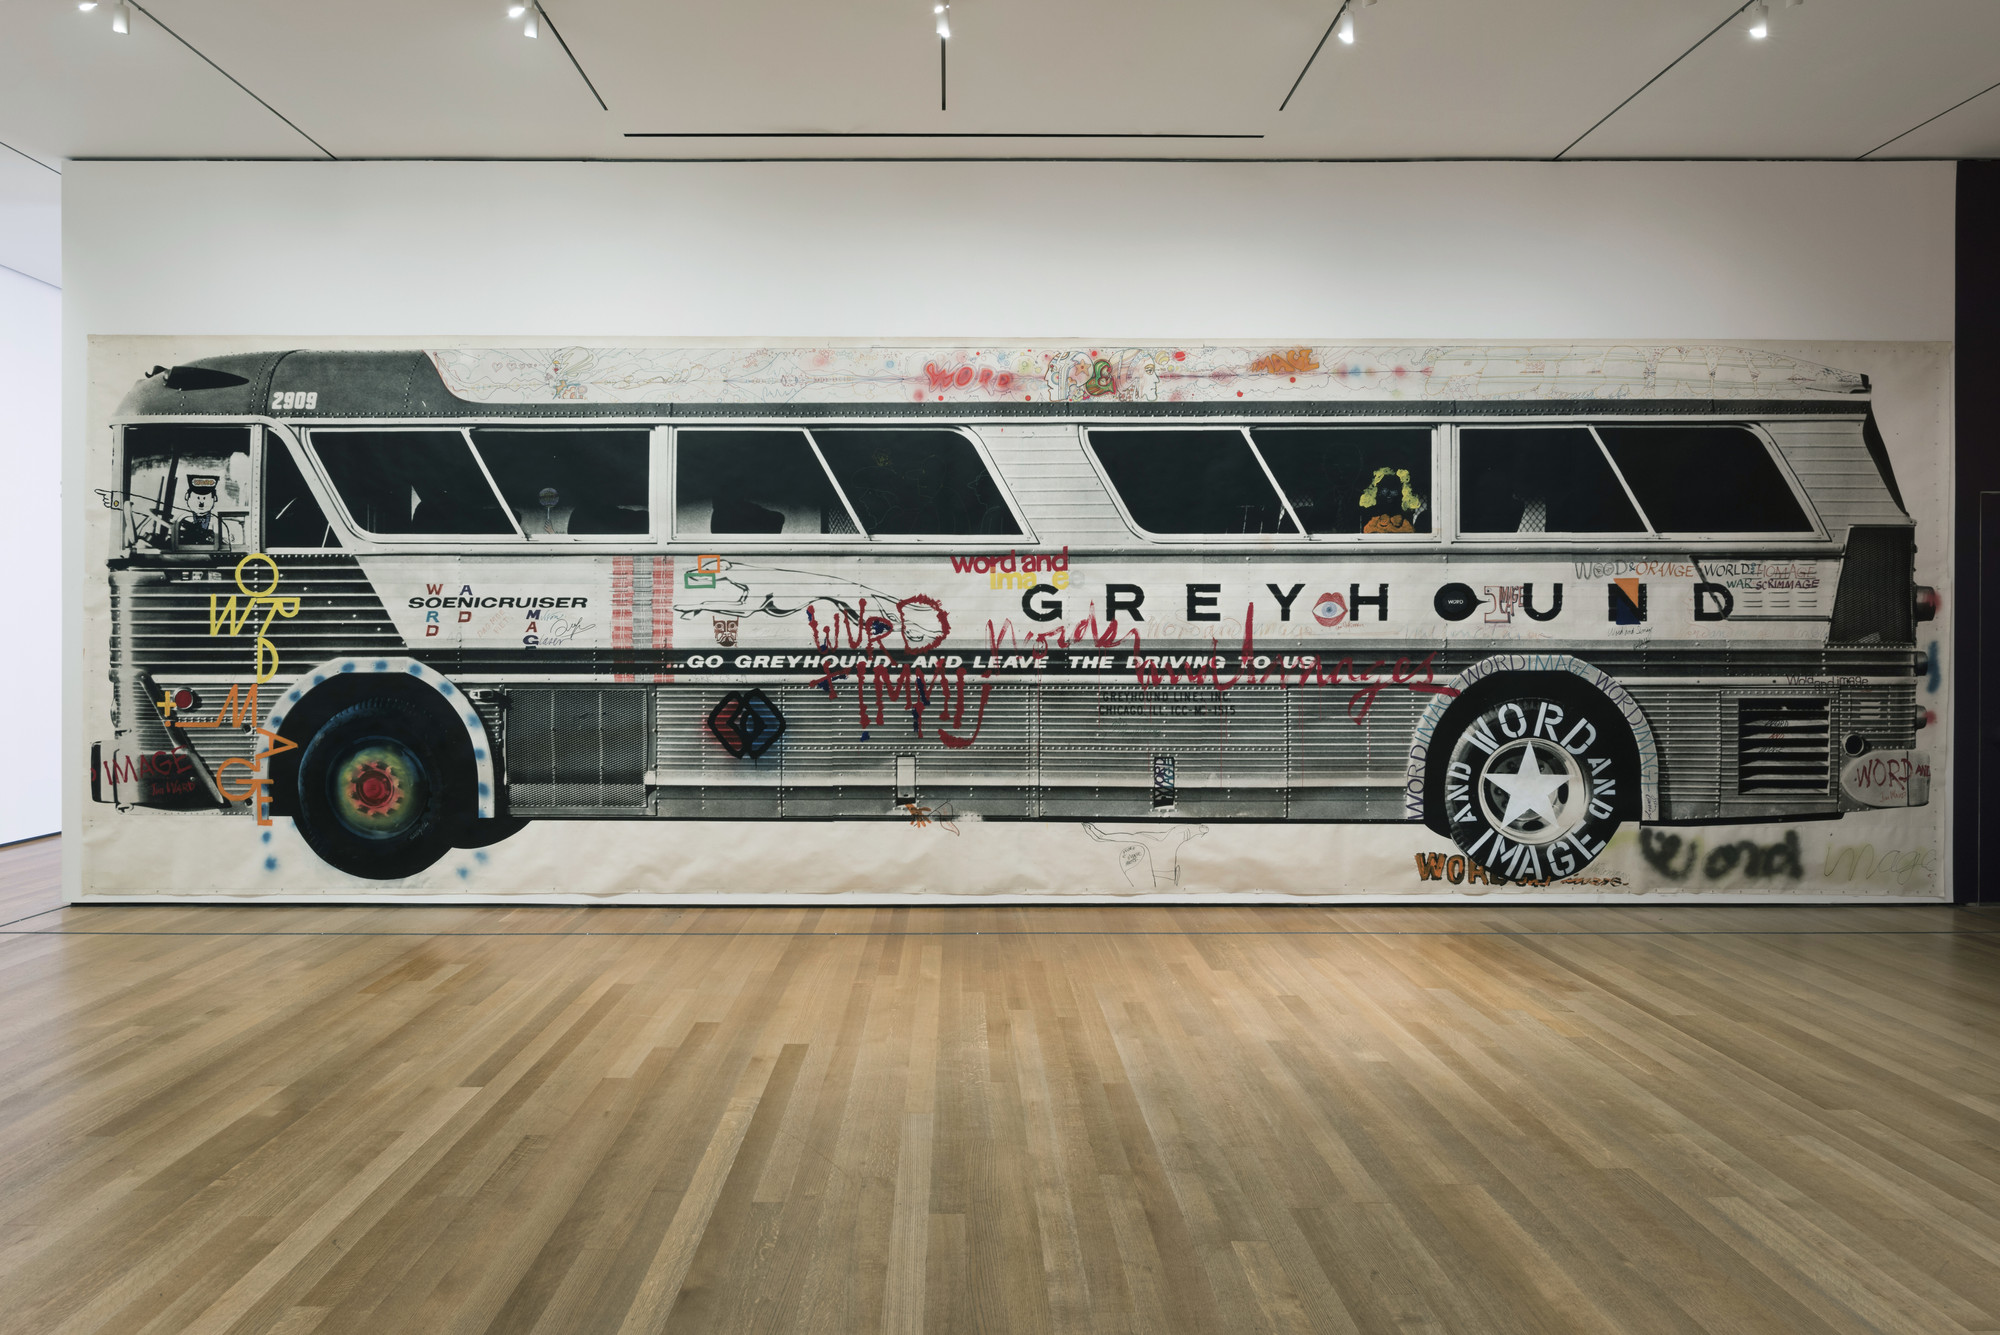 Mason Williams, Various Artists, Max Yavno. Bus (Copy signed by artists from the Word and Image exhibition, 1968). 1967–1968